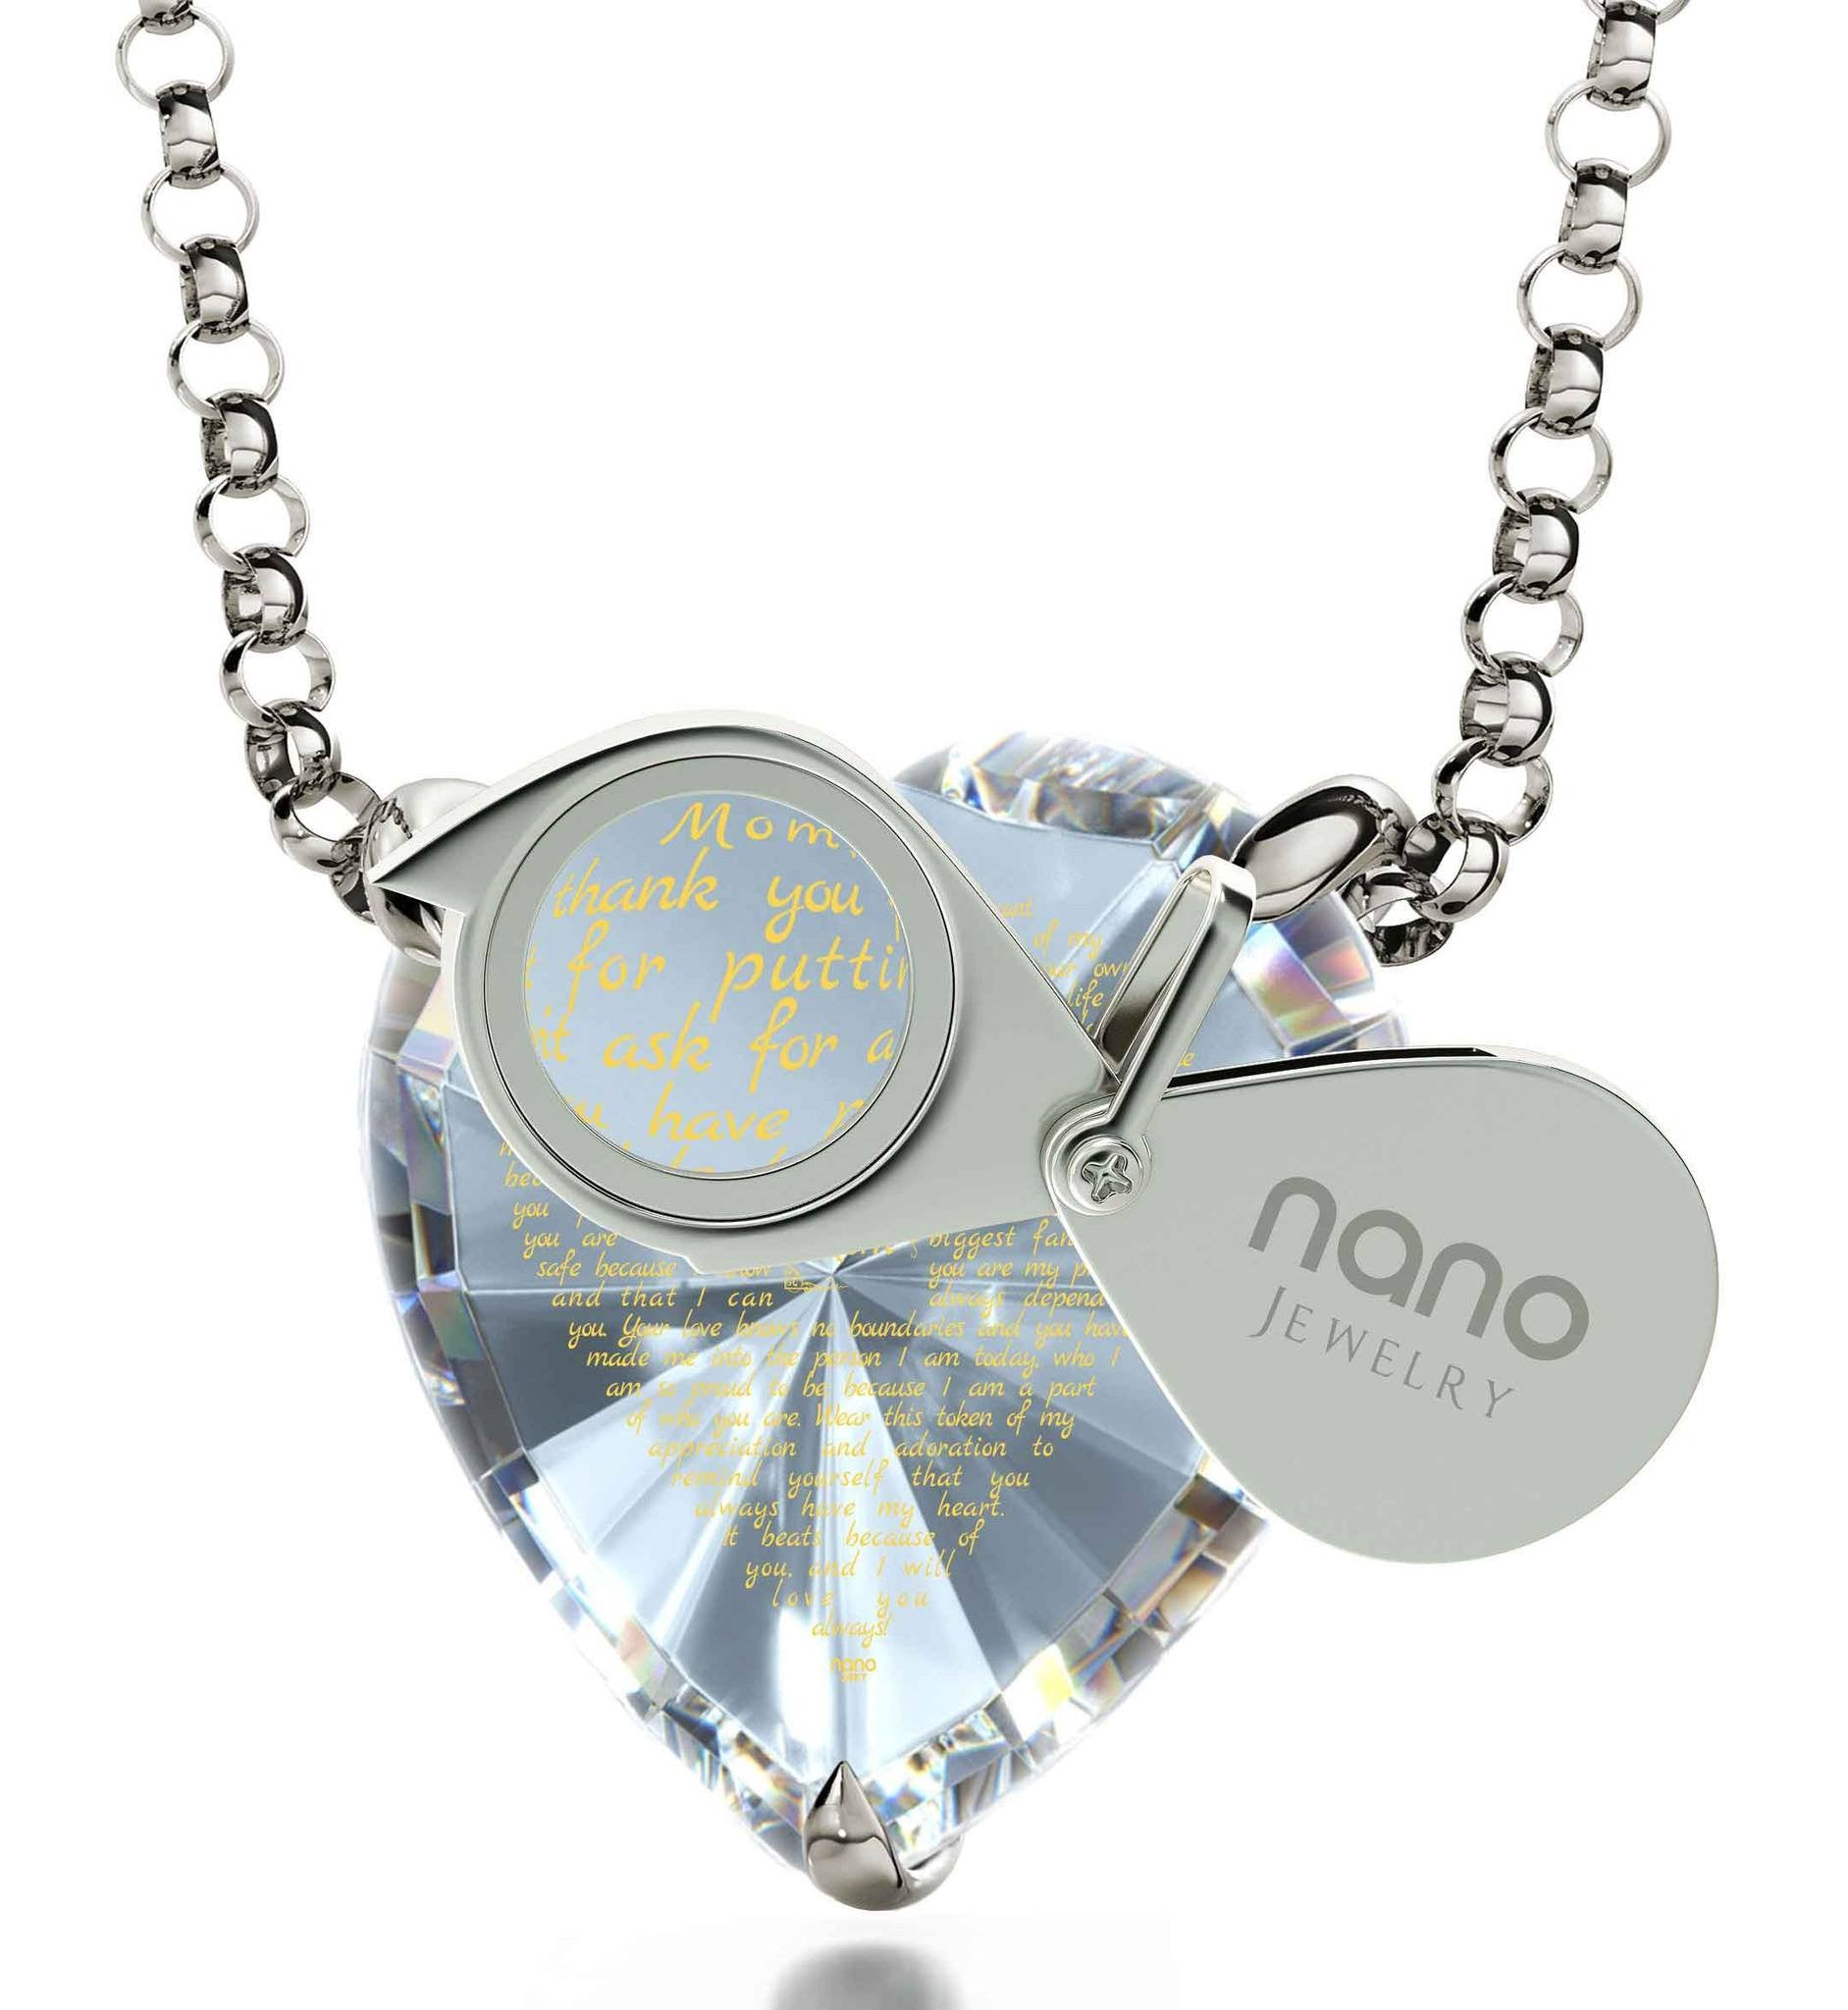 Presents for Mom Christmas: Necklaces with Meaning, CZ White Heart, Mother Birthday Gift Ideas by Nano Jewelry